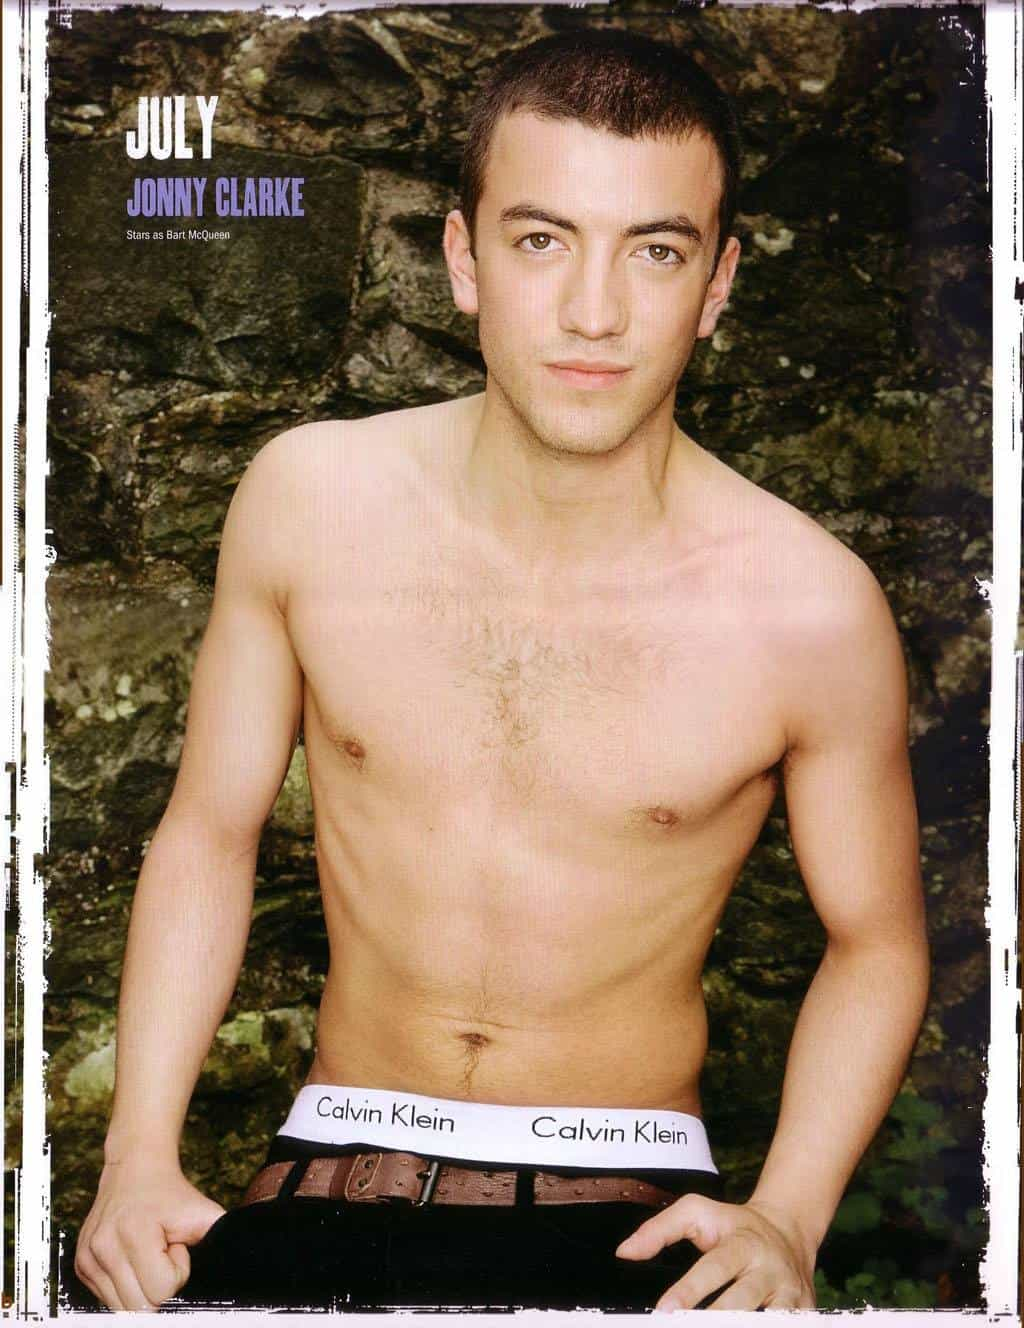 Jonny Clarke Shirtless In Hollyoaks 2012 Calender image